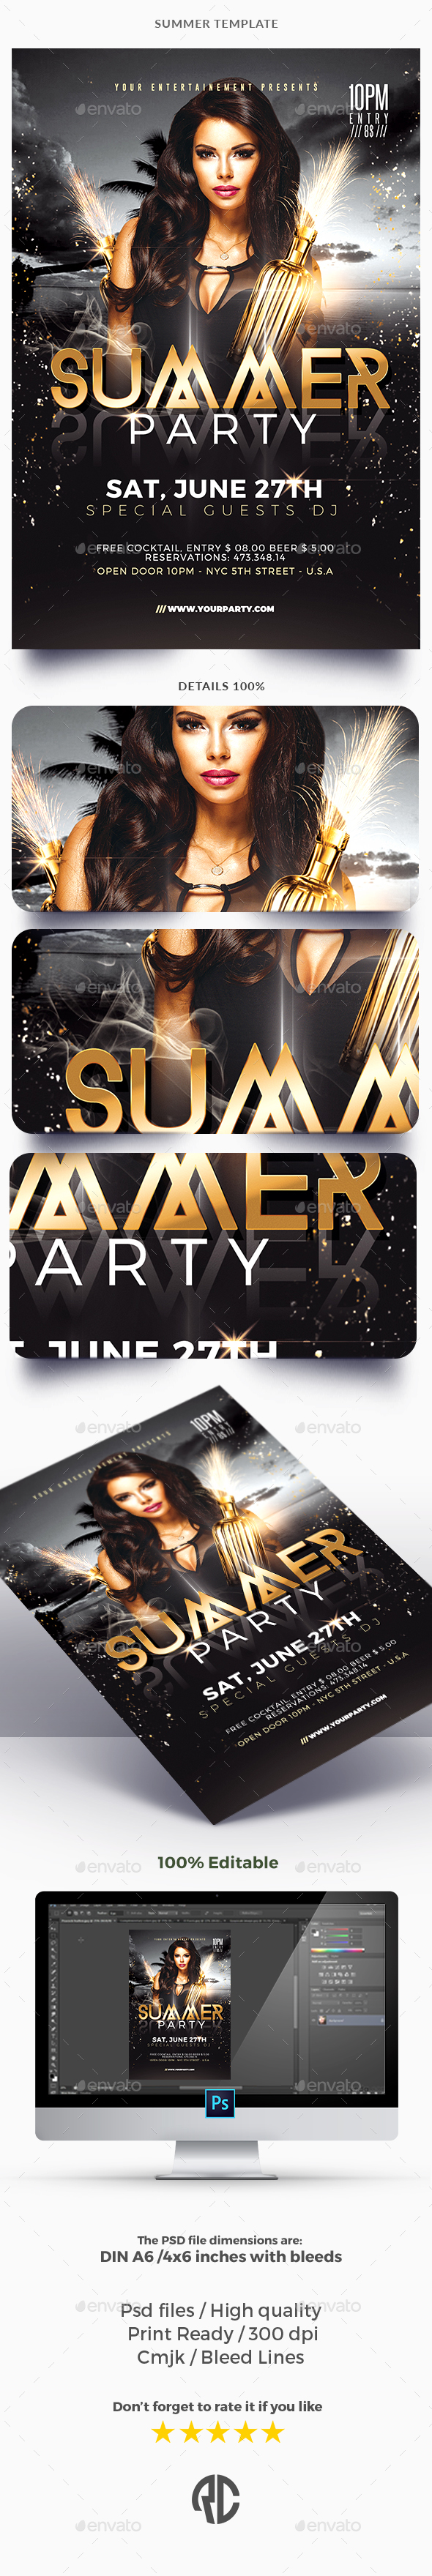 Classy Summer - Flyer Template - Clubs & Parties Events